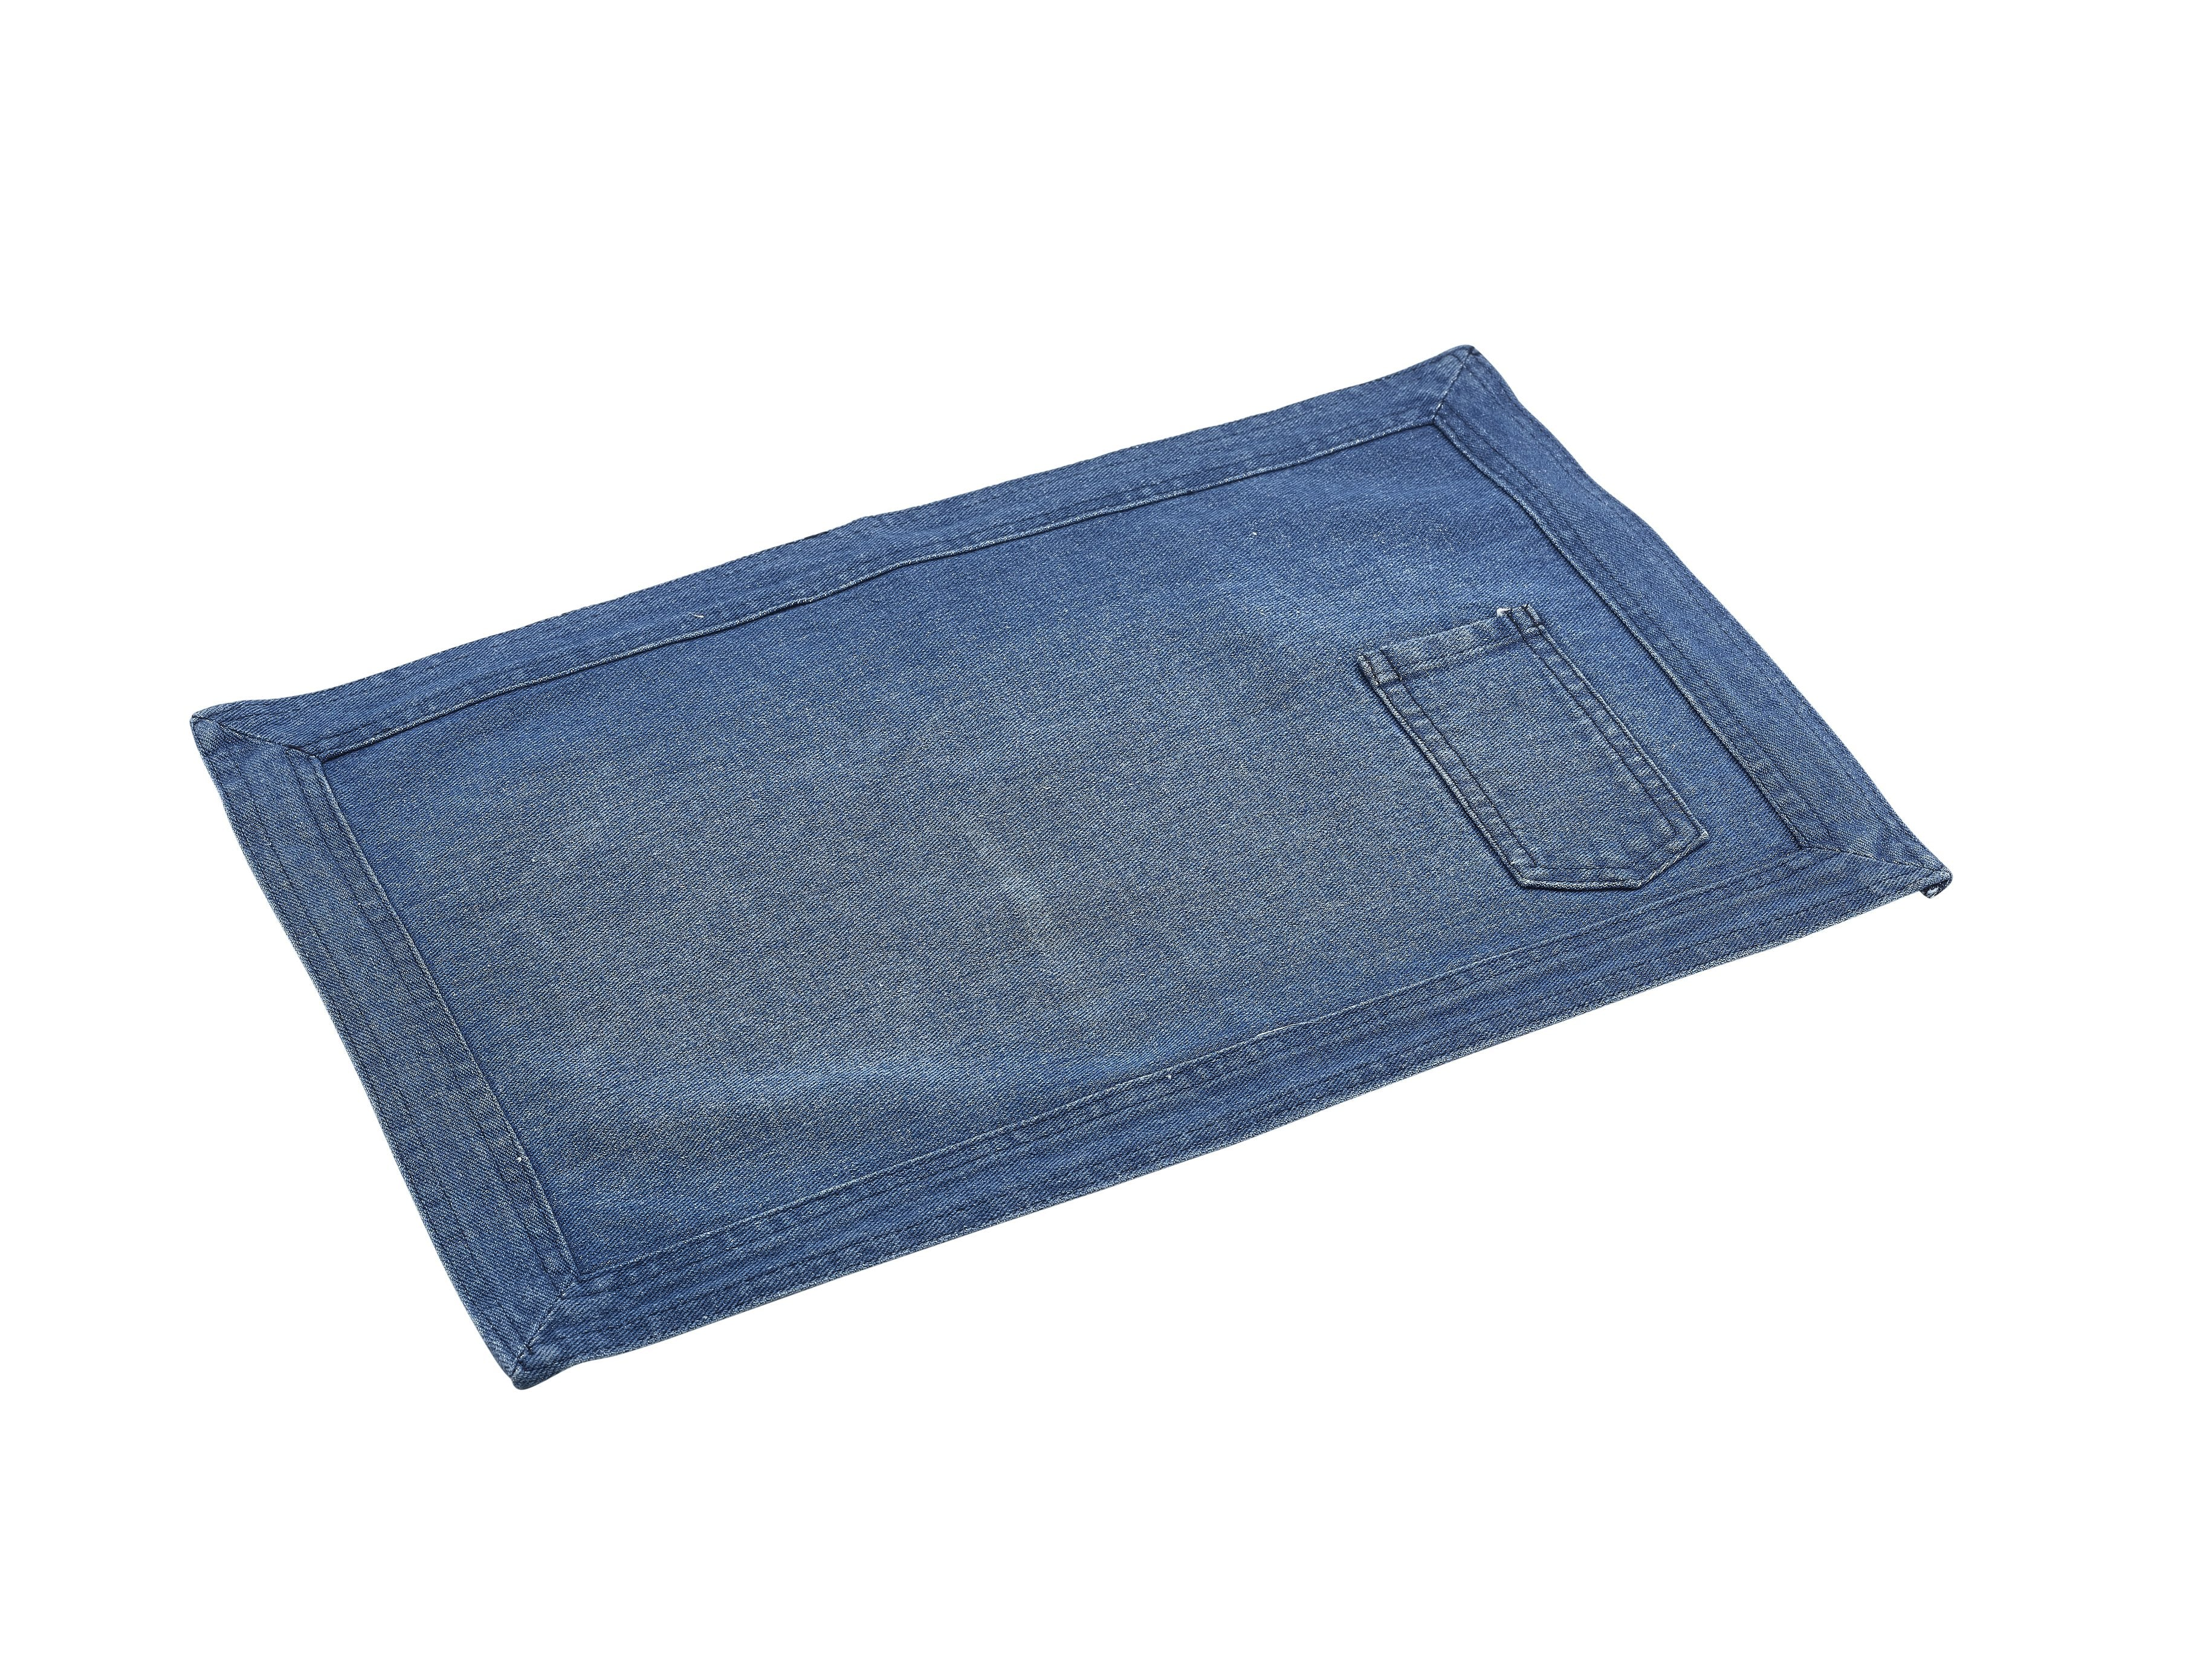 Washed Denim Placemat 45x30cm